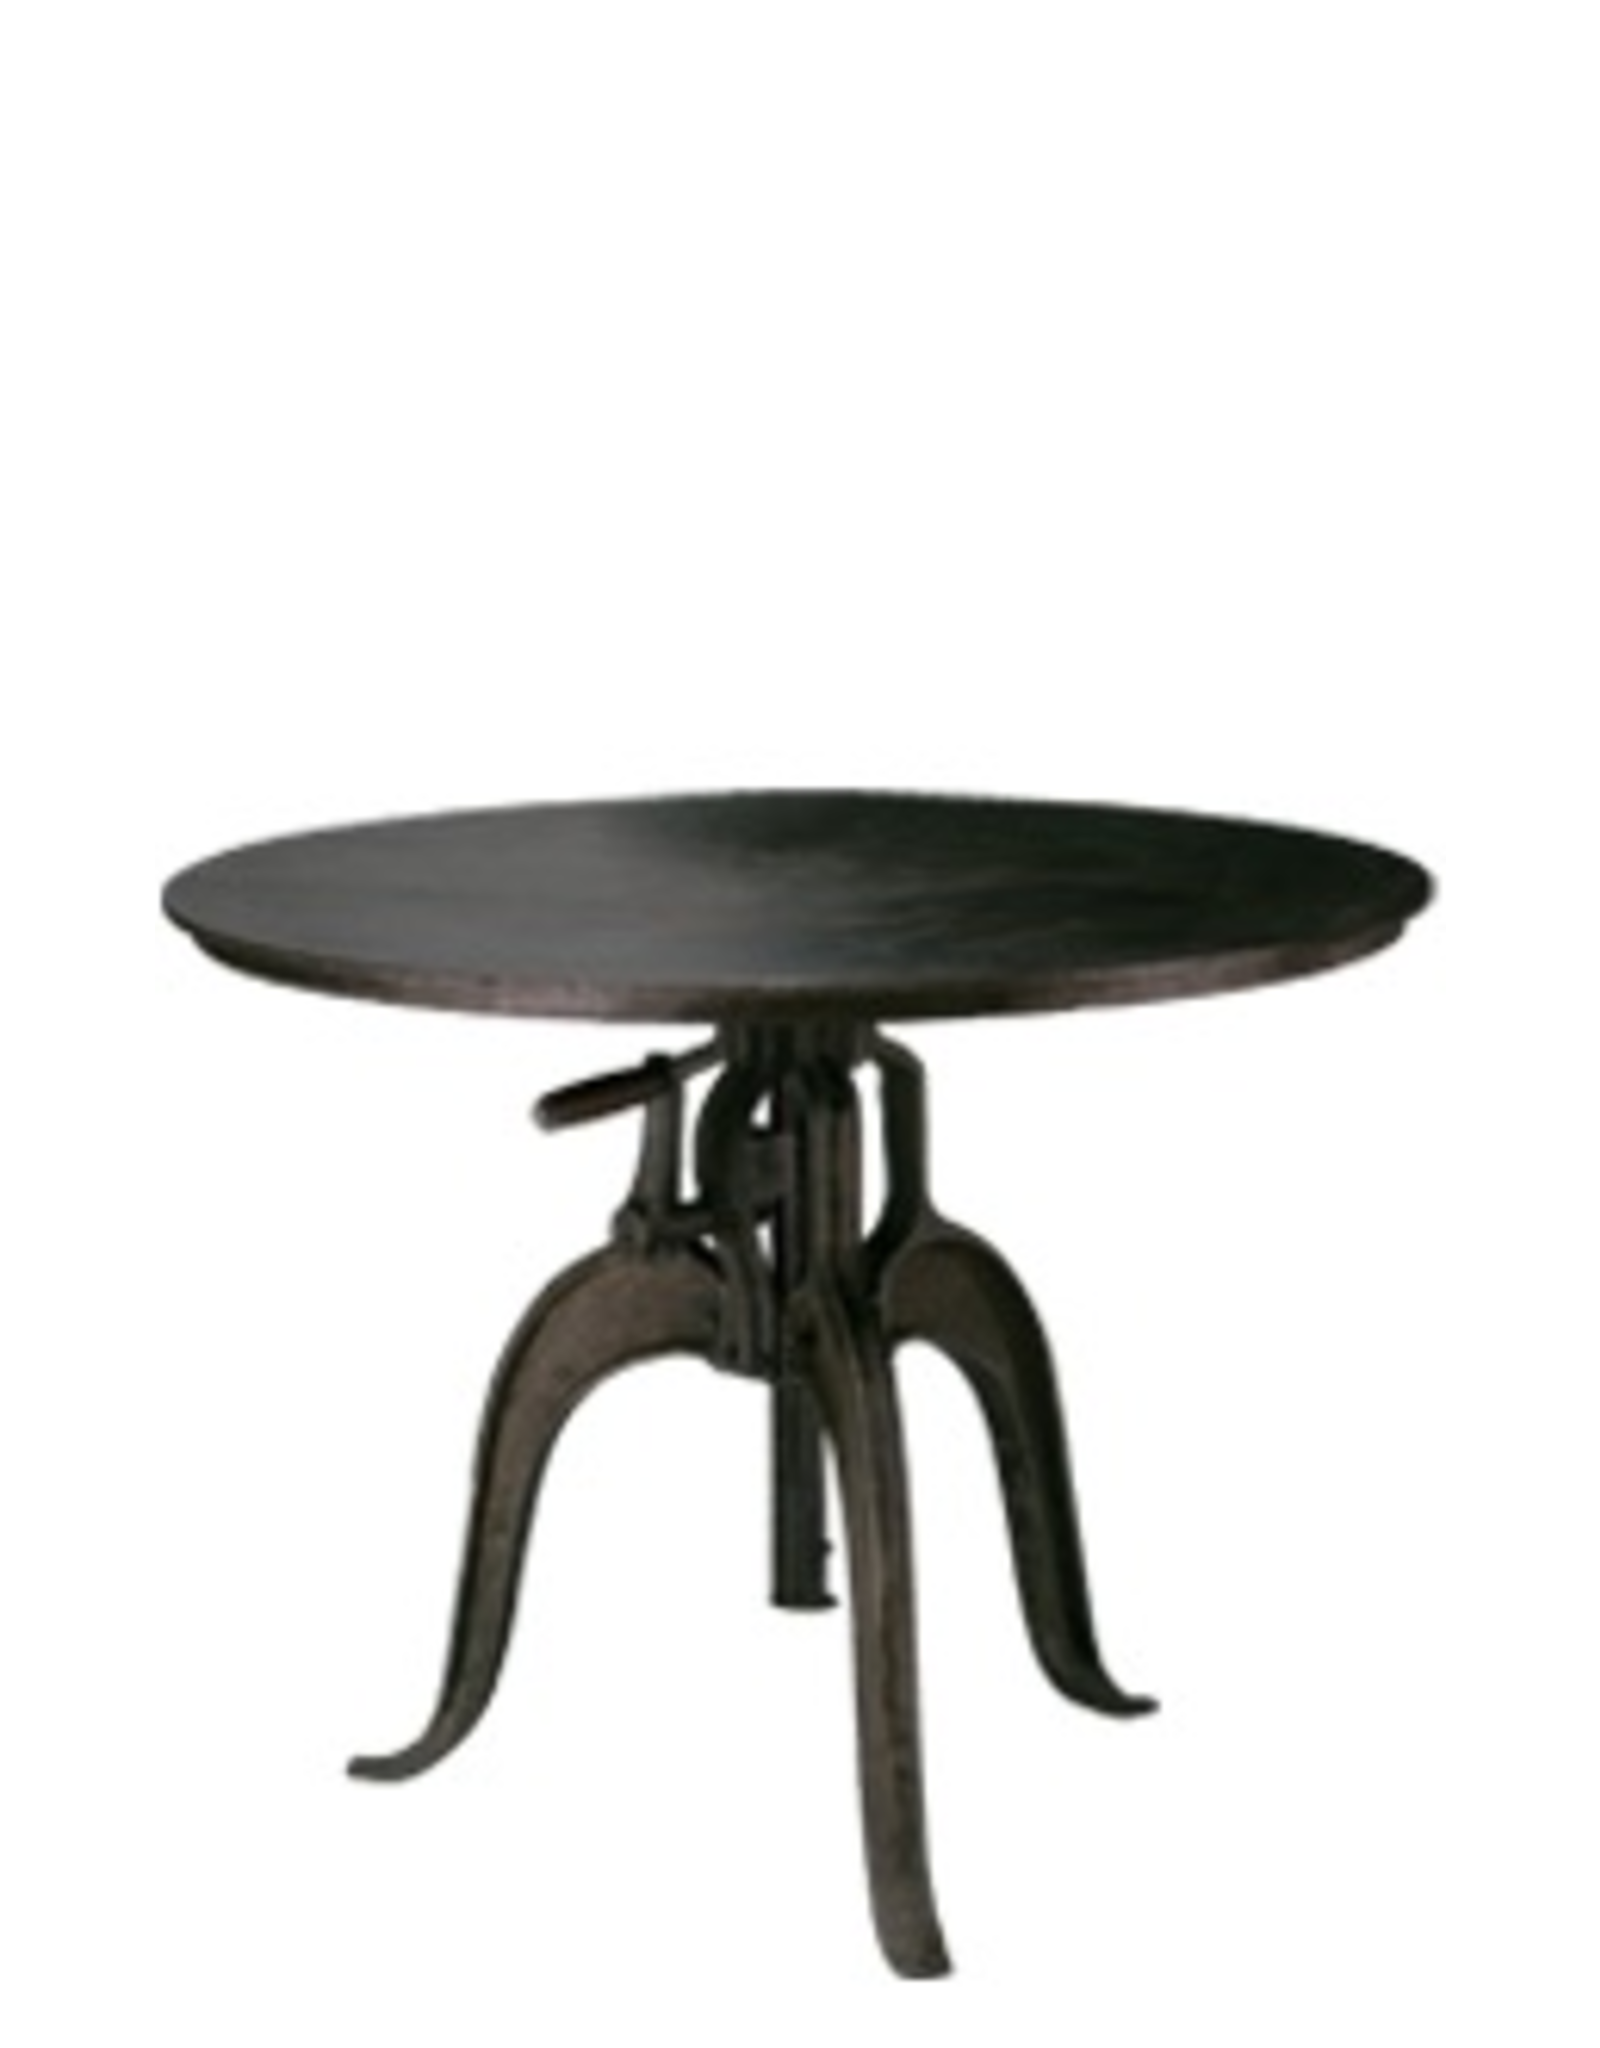 Jamie Young Company Americana Steel Crank Table 36 Round Adjustable Height